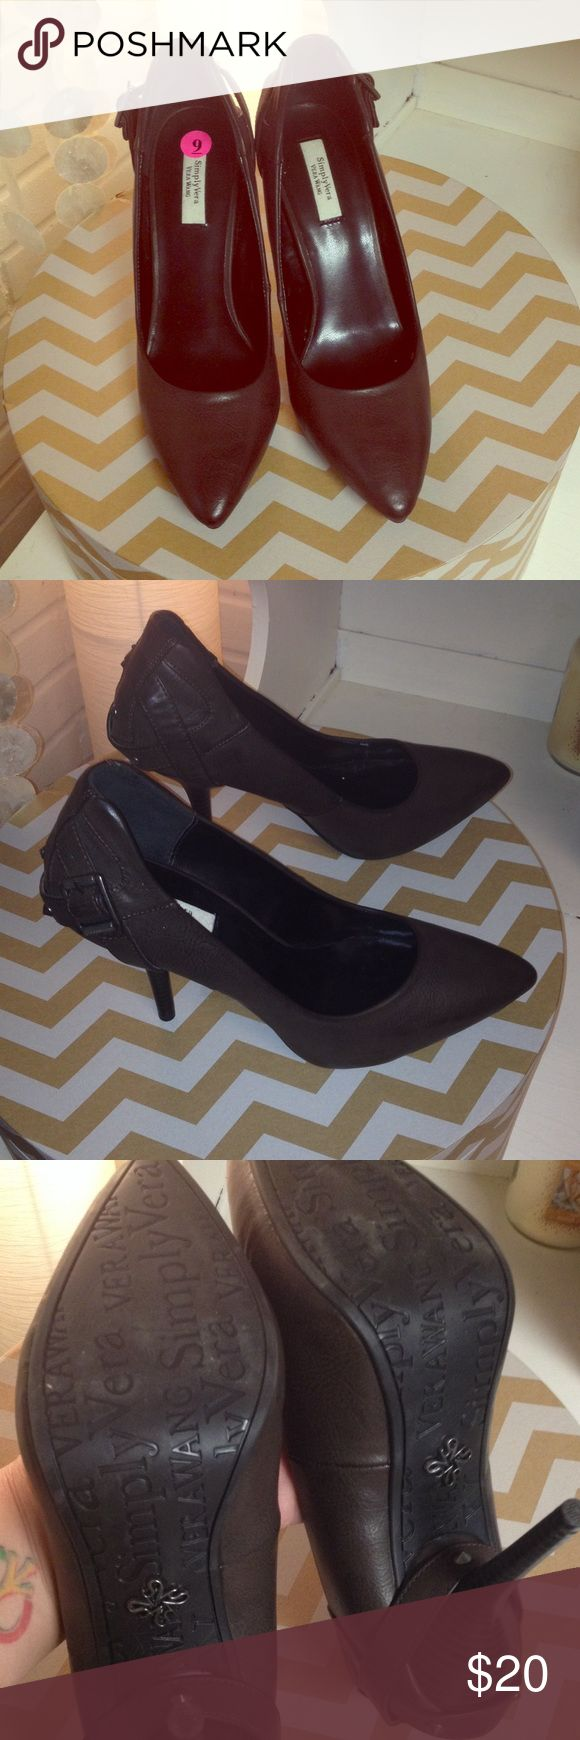 Simply Vera Vera Wang Size 9 high heels briefly worn instore NWT absolutely stunning! Simply Vera Vera Wang Shoes Heels